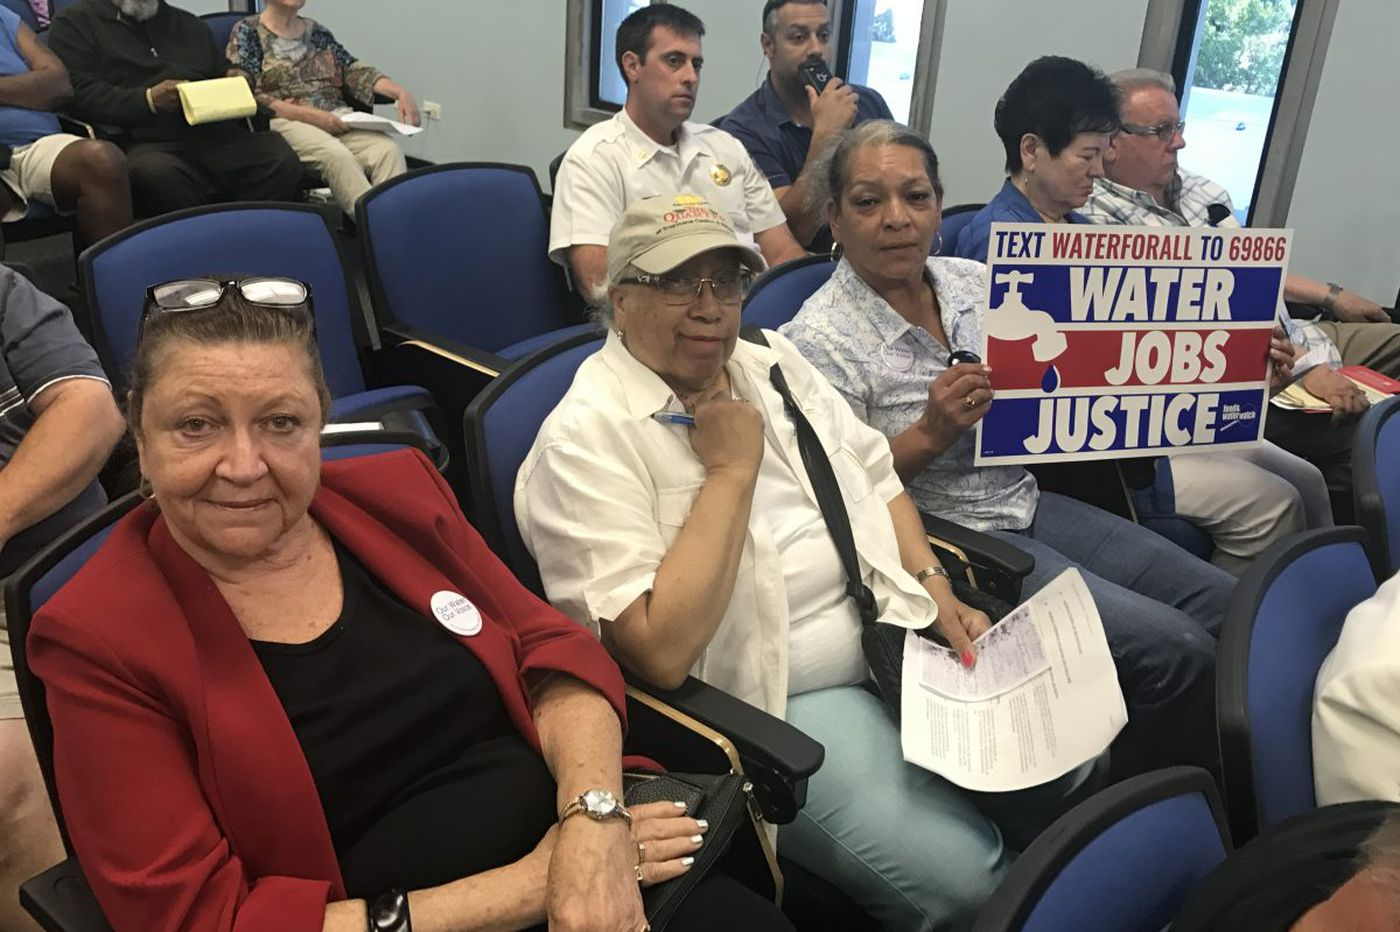 Atlantic City's female leaders, and 2,421 signatures, demand say in any water sale